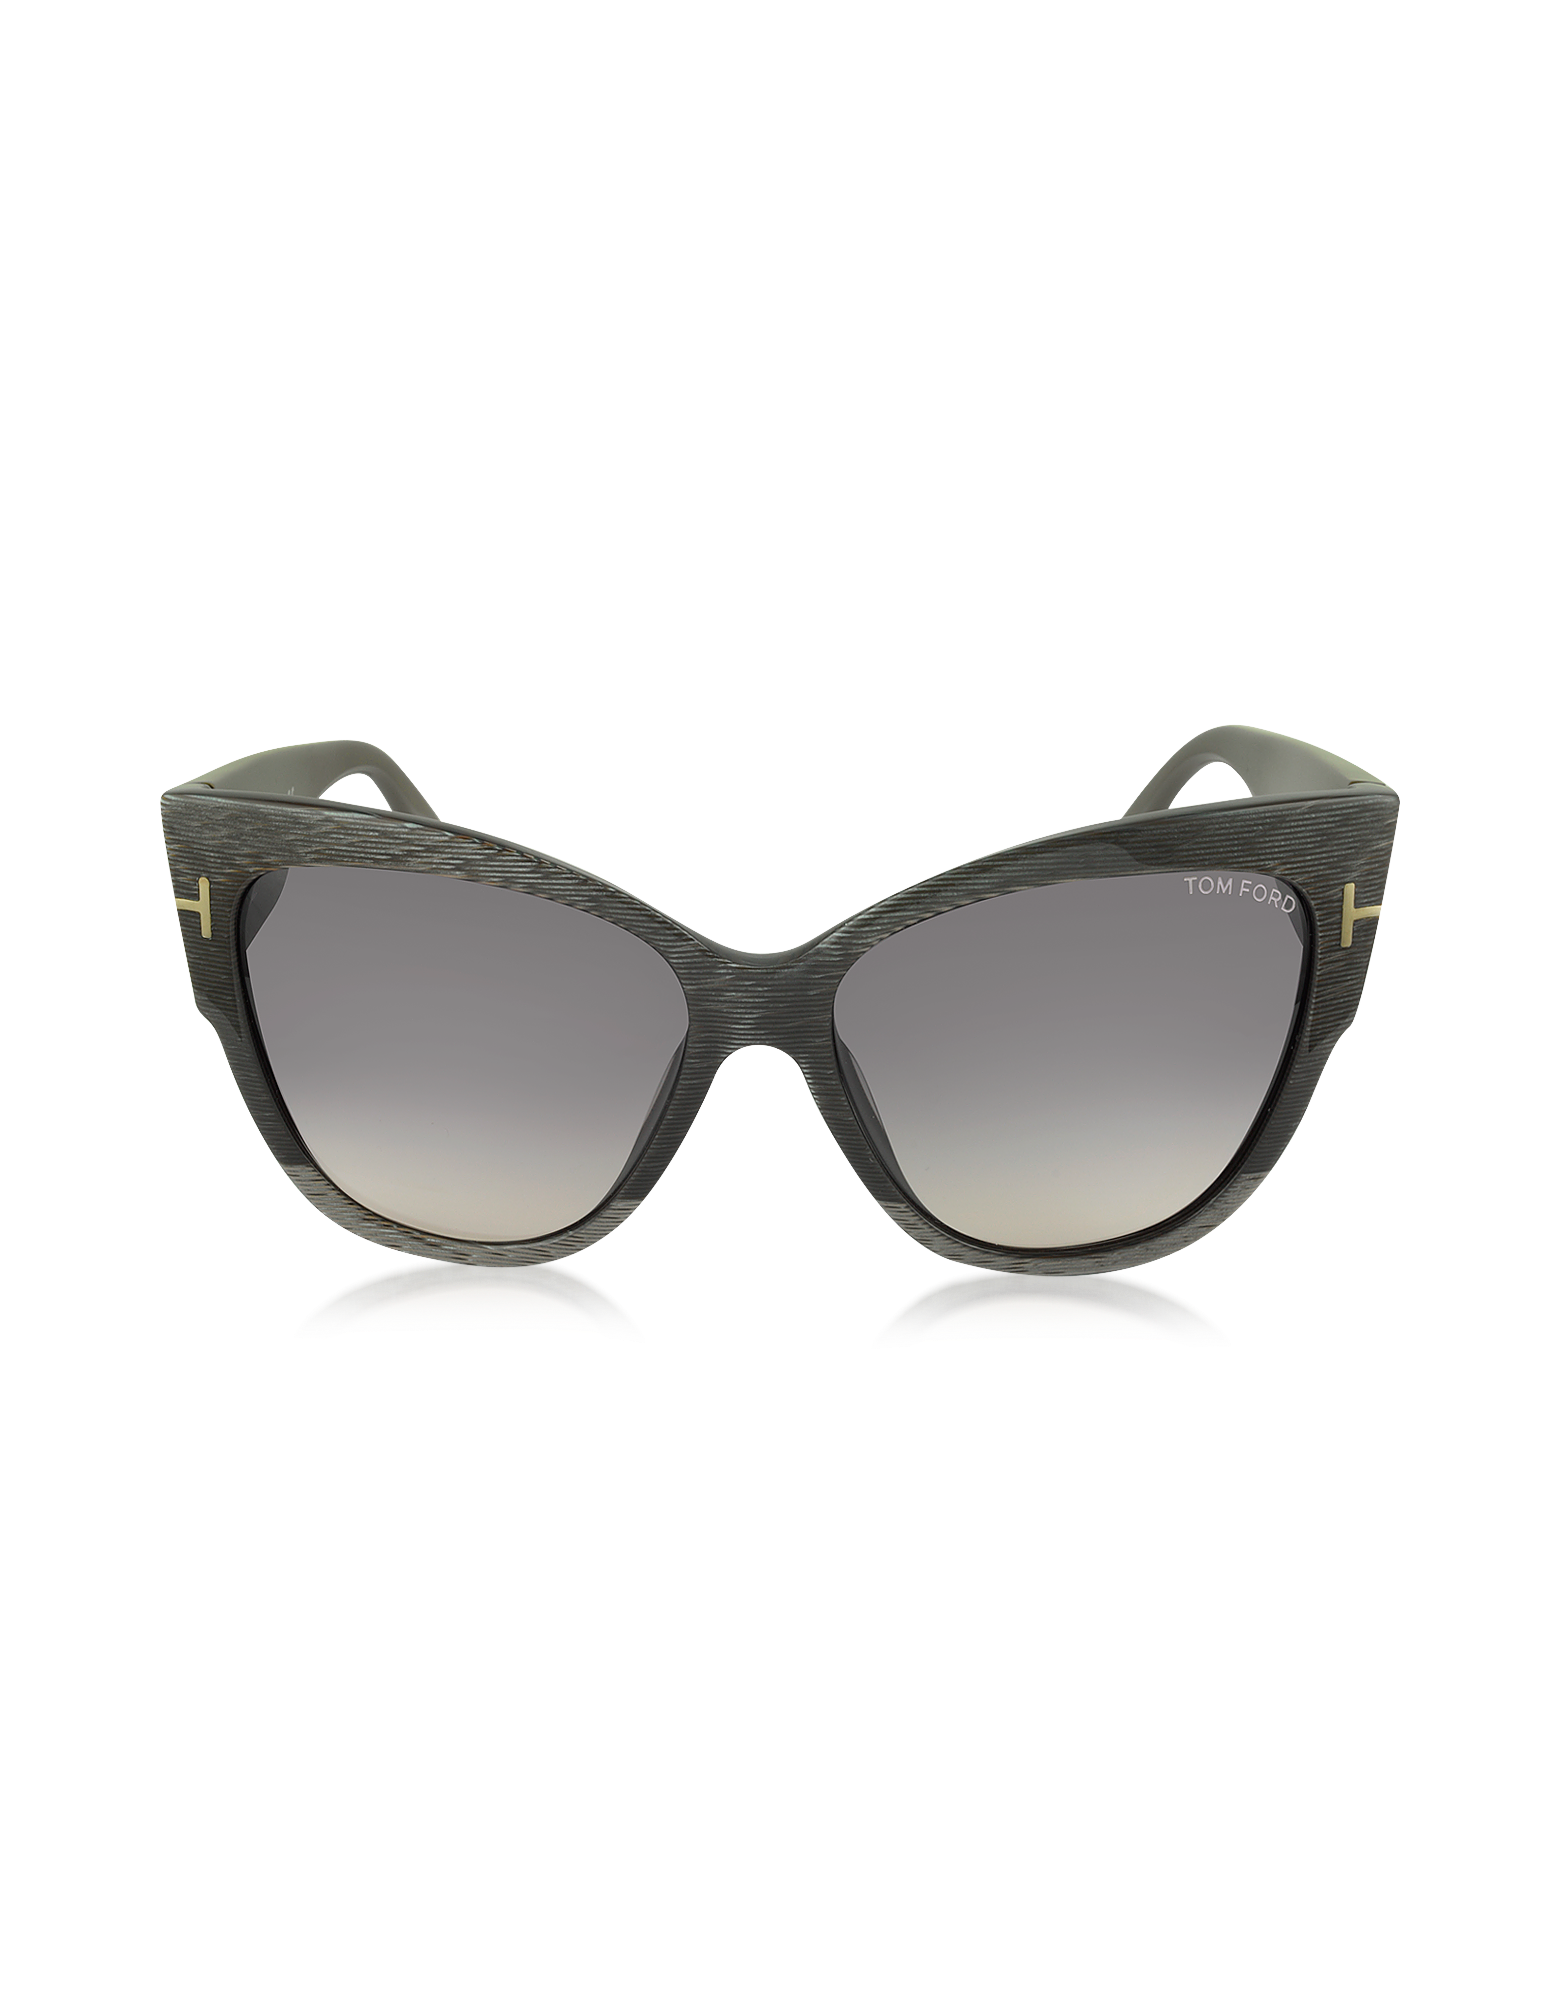 Image of ANOUSHKA FT0371 38B Dove Grey Cat Eye Sunglasses